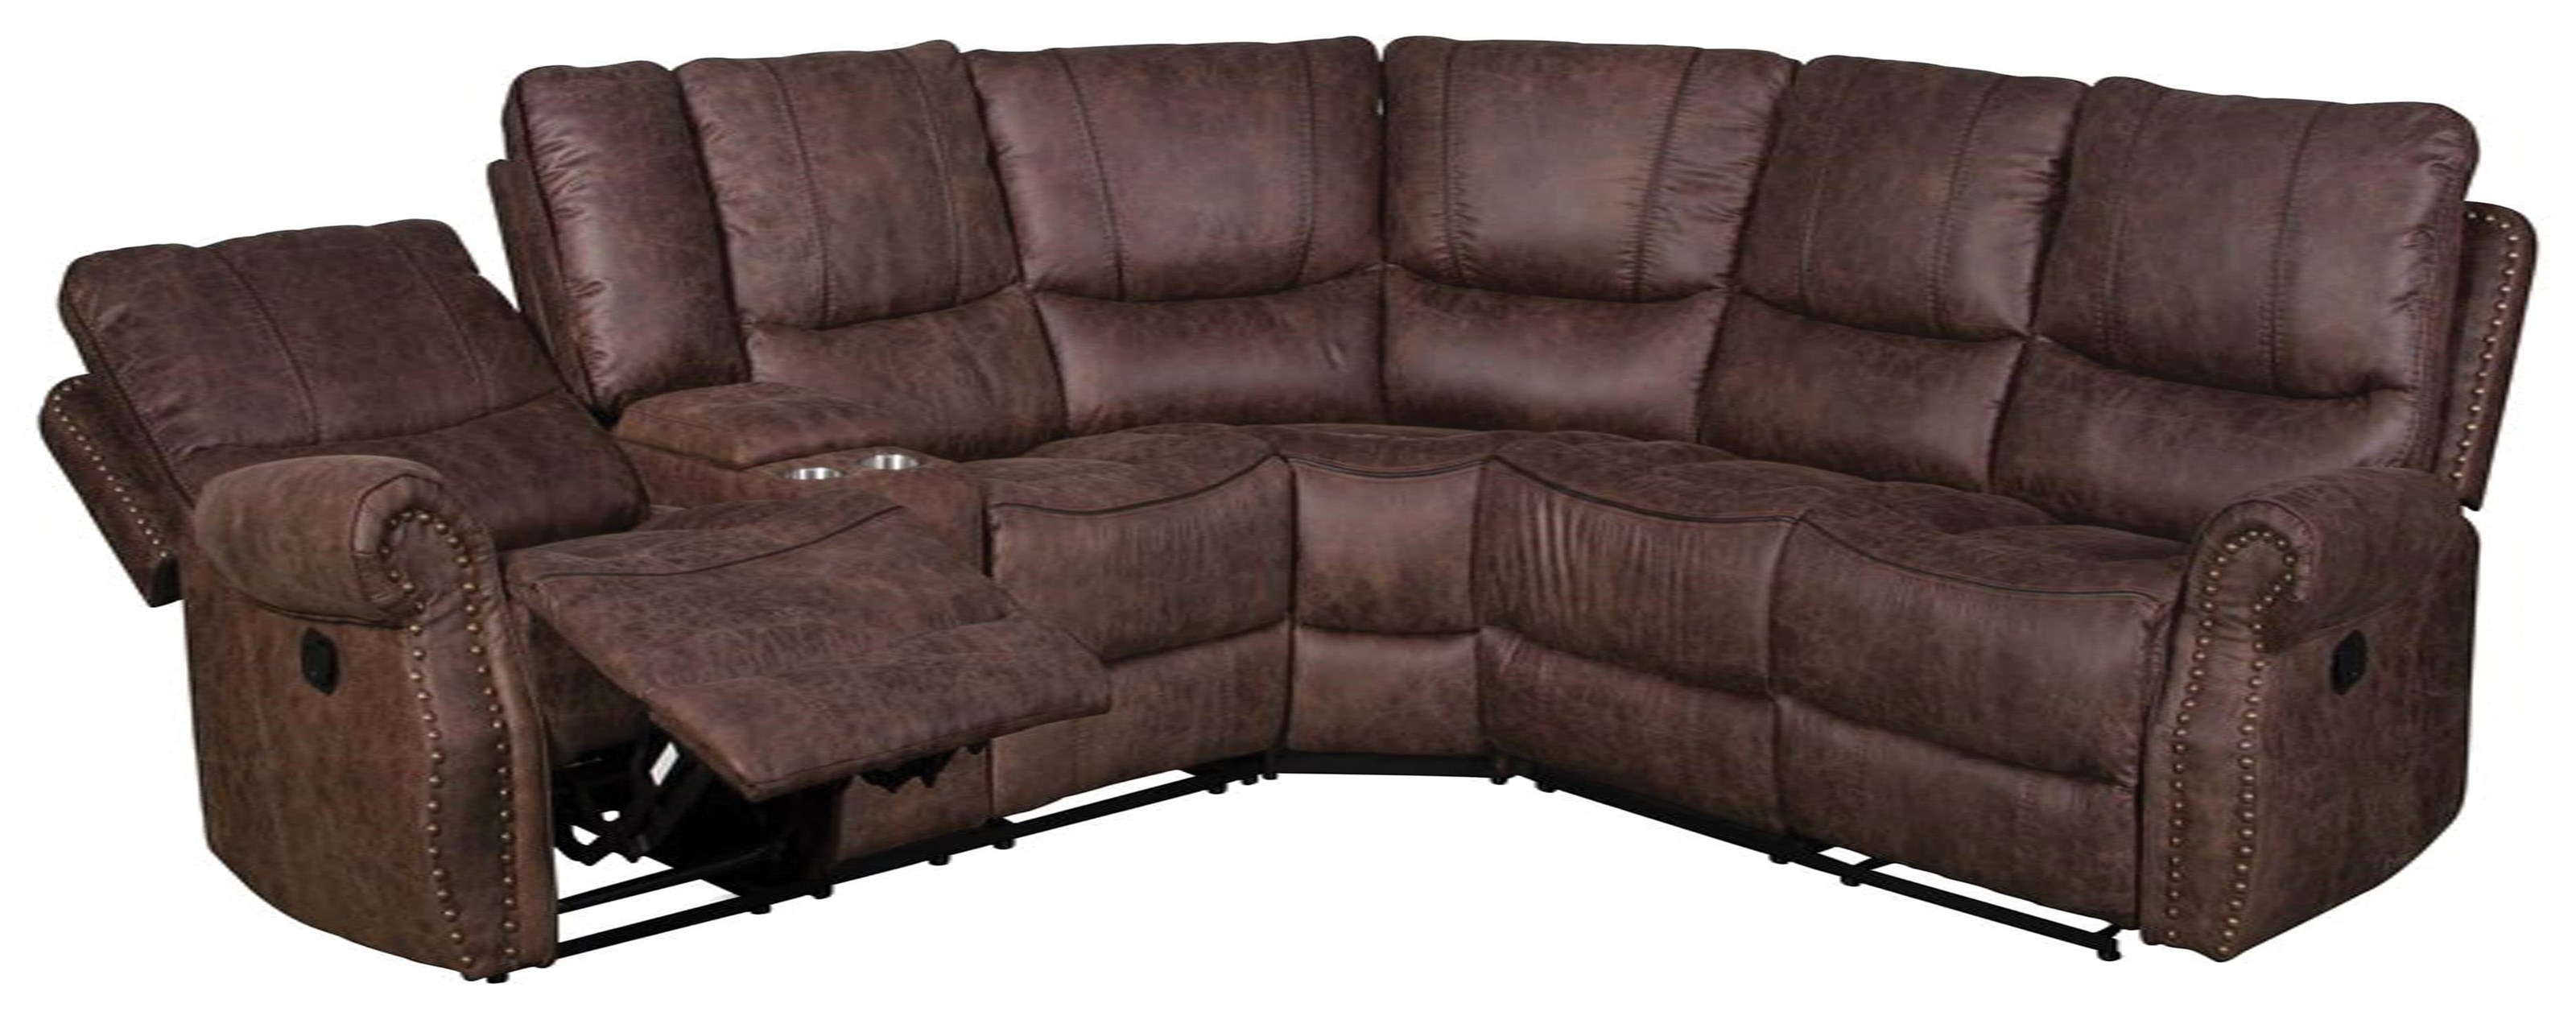 6977 3 Piece Reclining Sectional by Happy Leather Company at VanDrie Home Furnishings